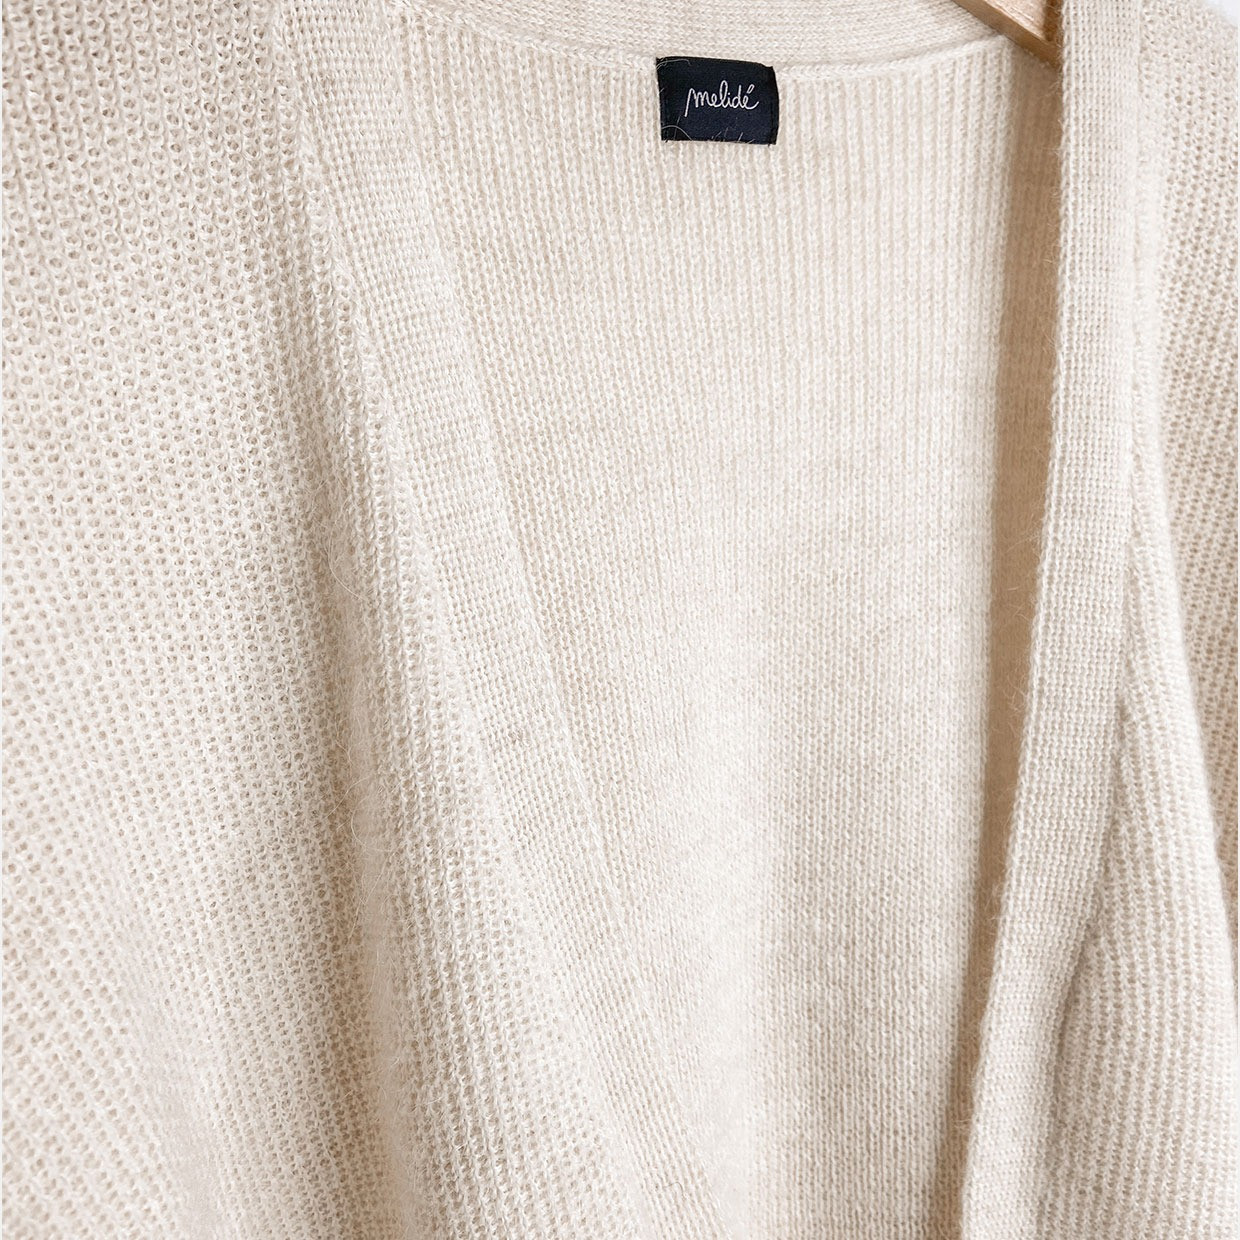 The PLAIN cardigan - alpaca panna